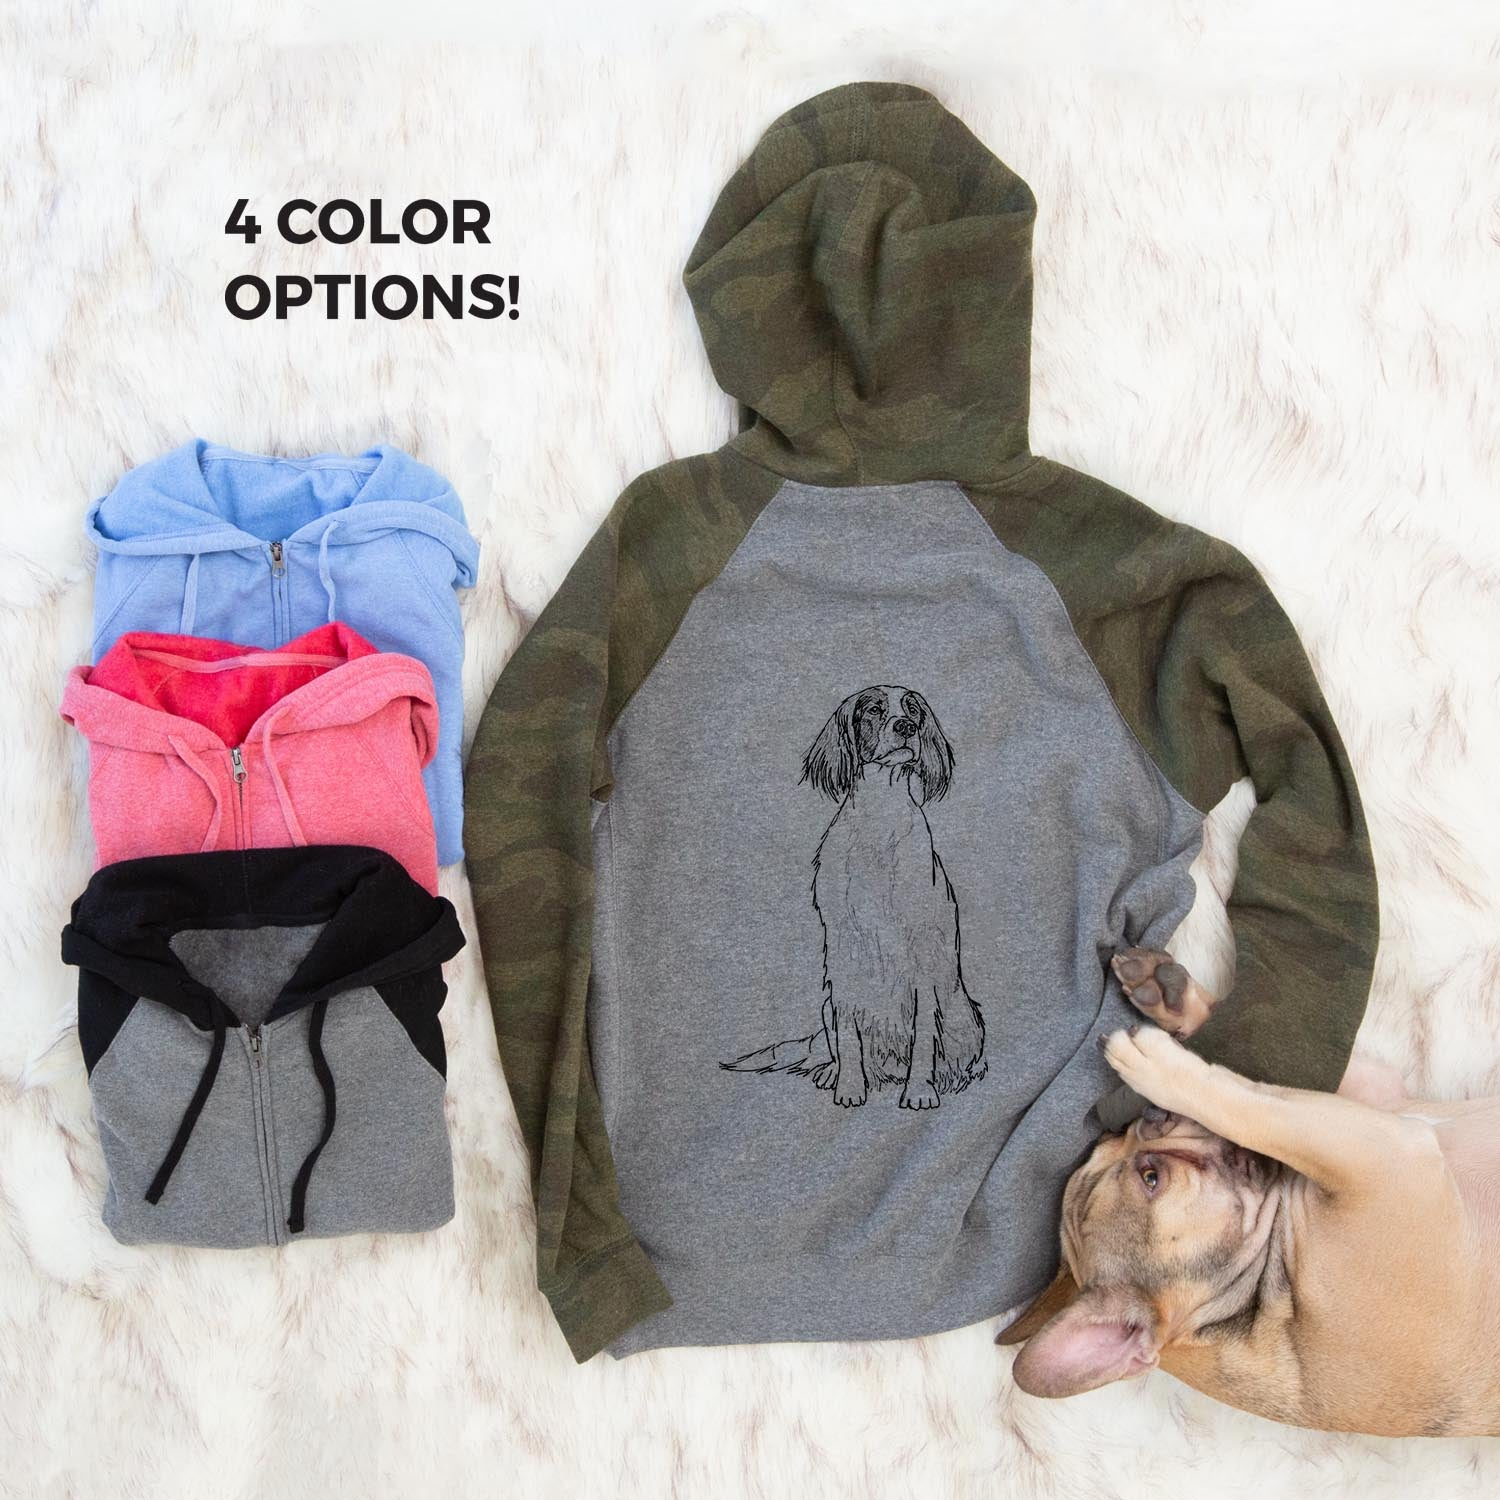 Doodled Fallon the Irish Red and White Setter - Unisex Raglan Zip Up Hoodie